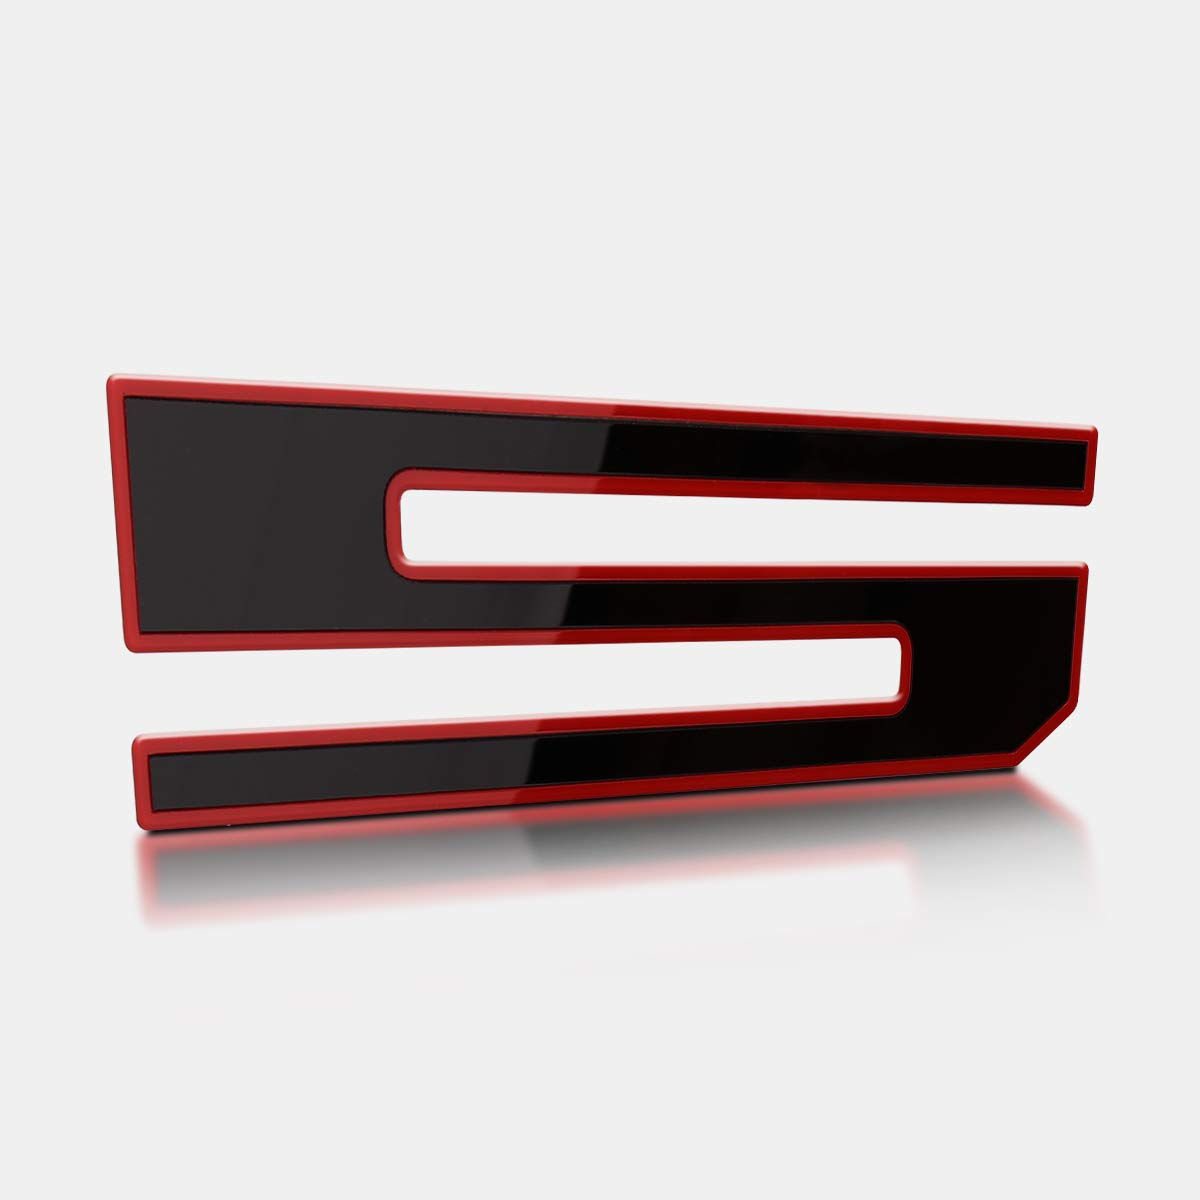 3D F150 Emblem Red Outline with Black Lawr Adhesive F150 Tailgate Insert Letters Tailgate Decal Letters for F150 2018 2019